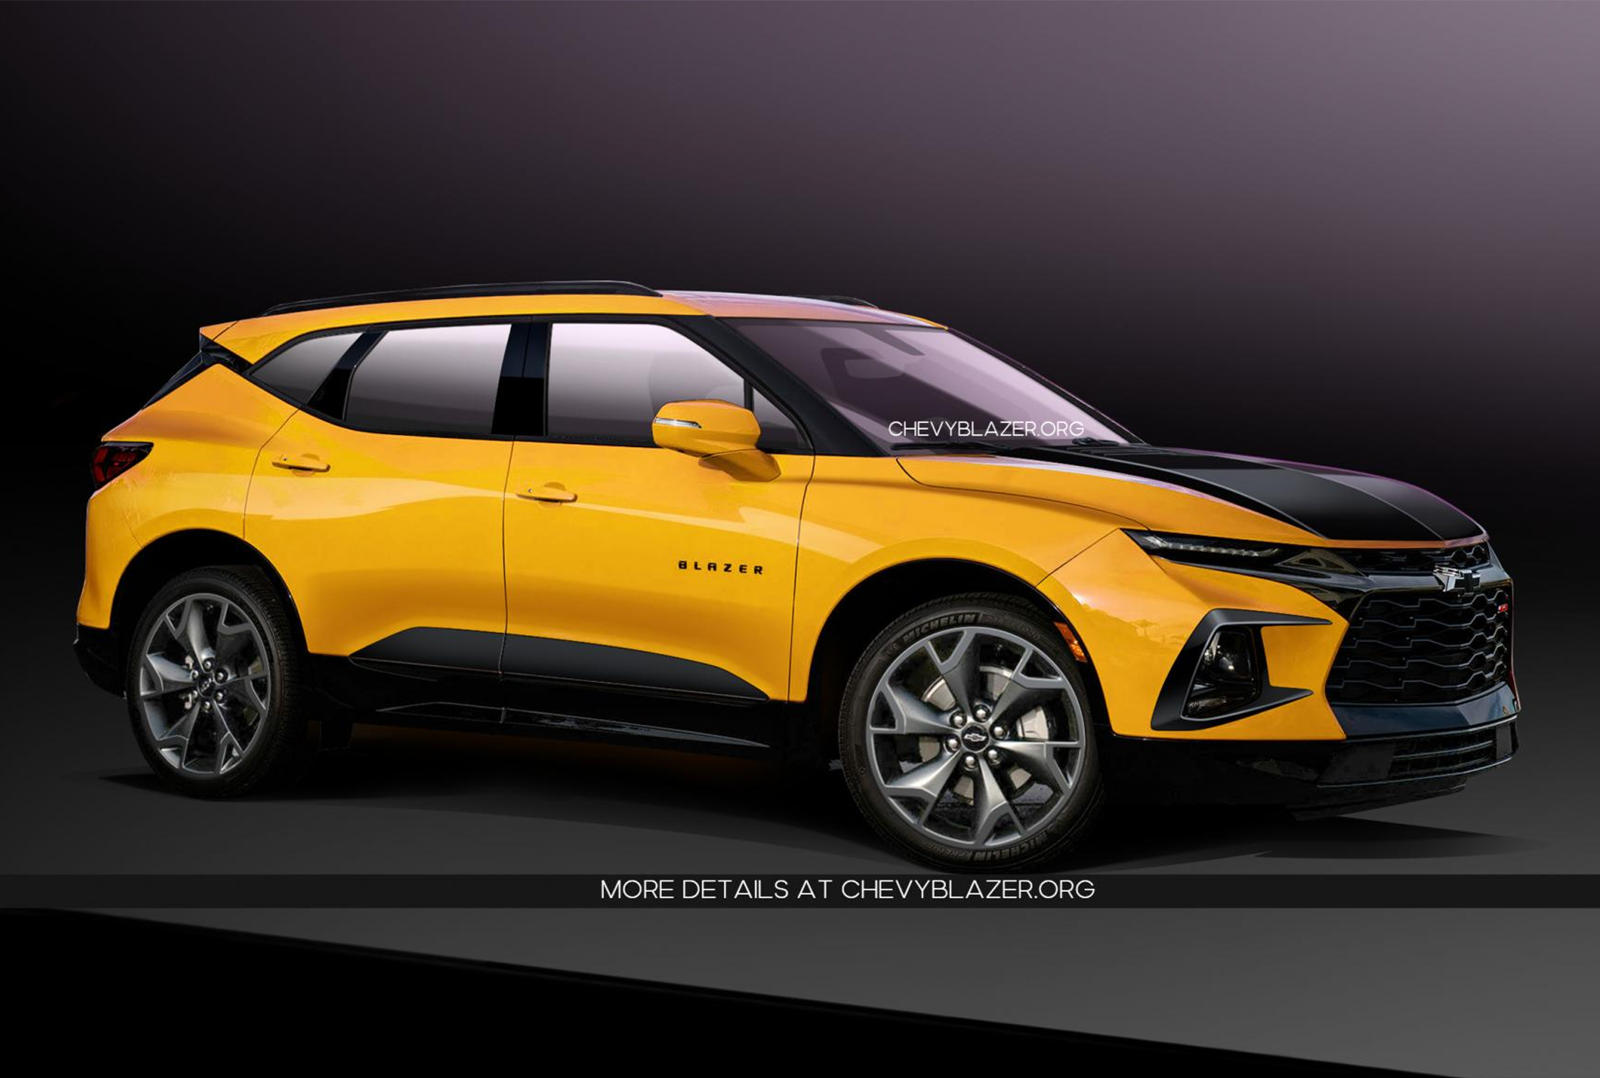 The Chevrolet Blazer Ss Of Our Dreams Is Sadly Impossible Carbuzz